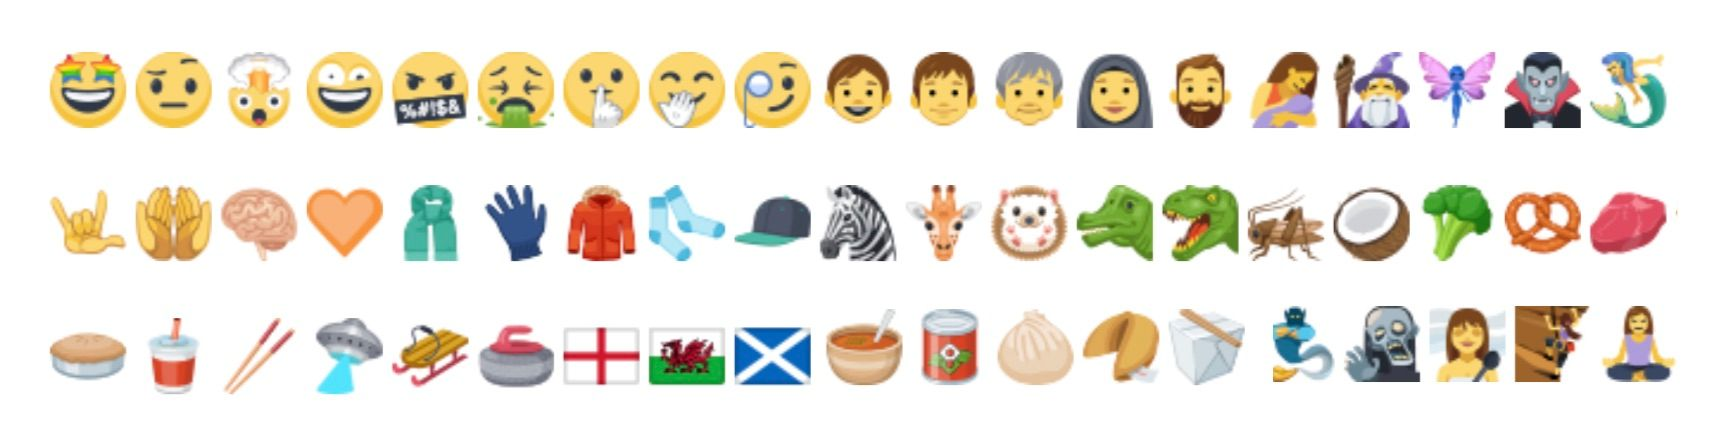 New Emojis Now Showing On Facebook